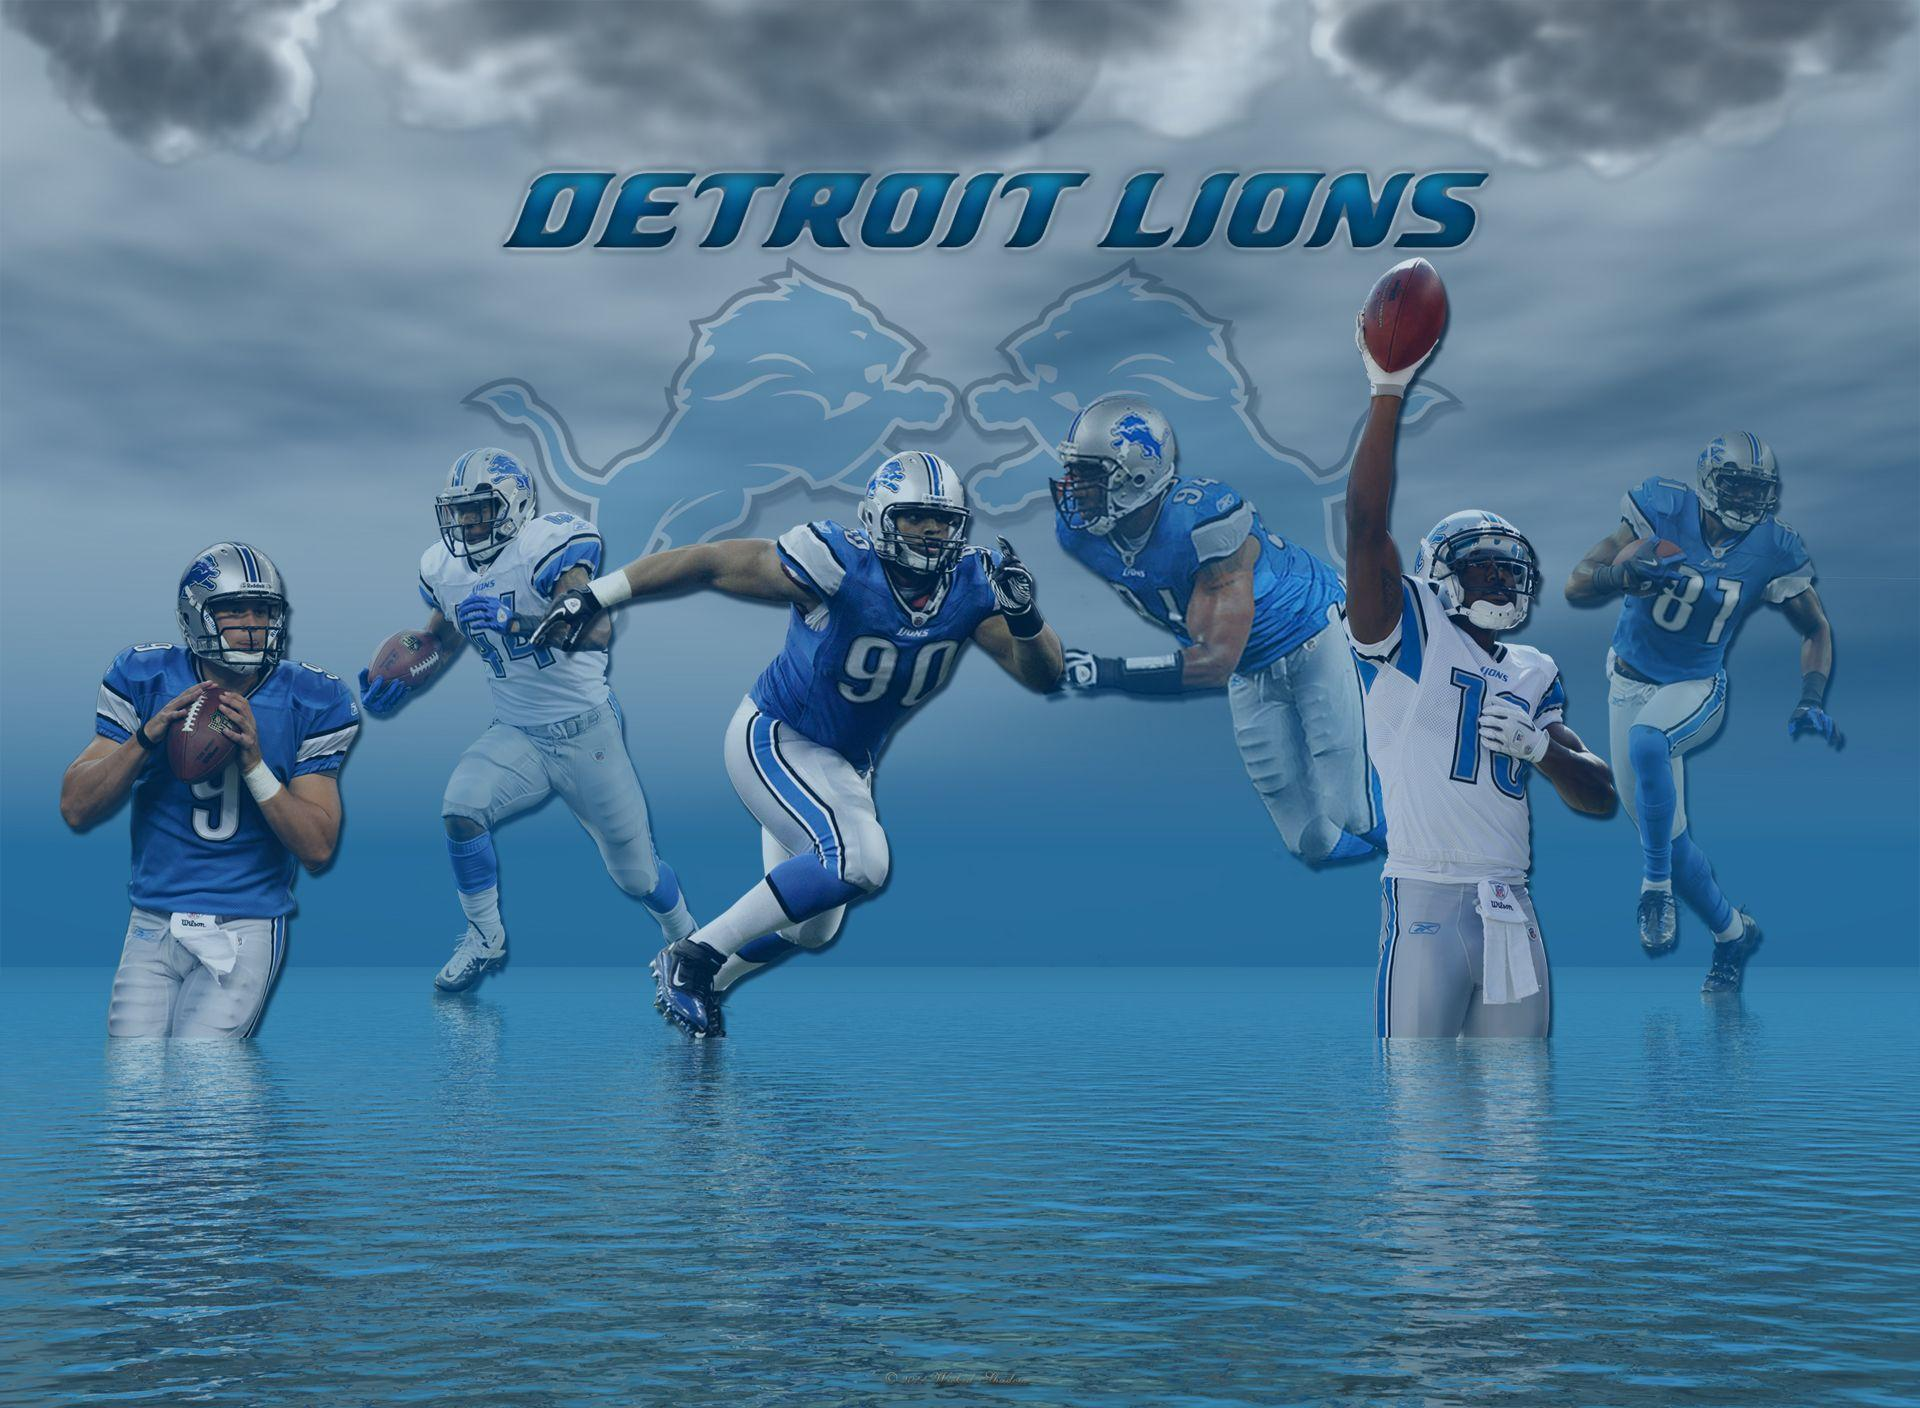 Get your ticket to see the Detroit Lions at the Lowest Possible Price All Tickets are 100 guaranteed Lets Go!